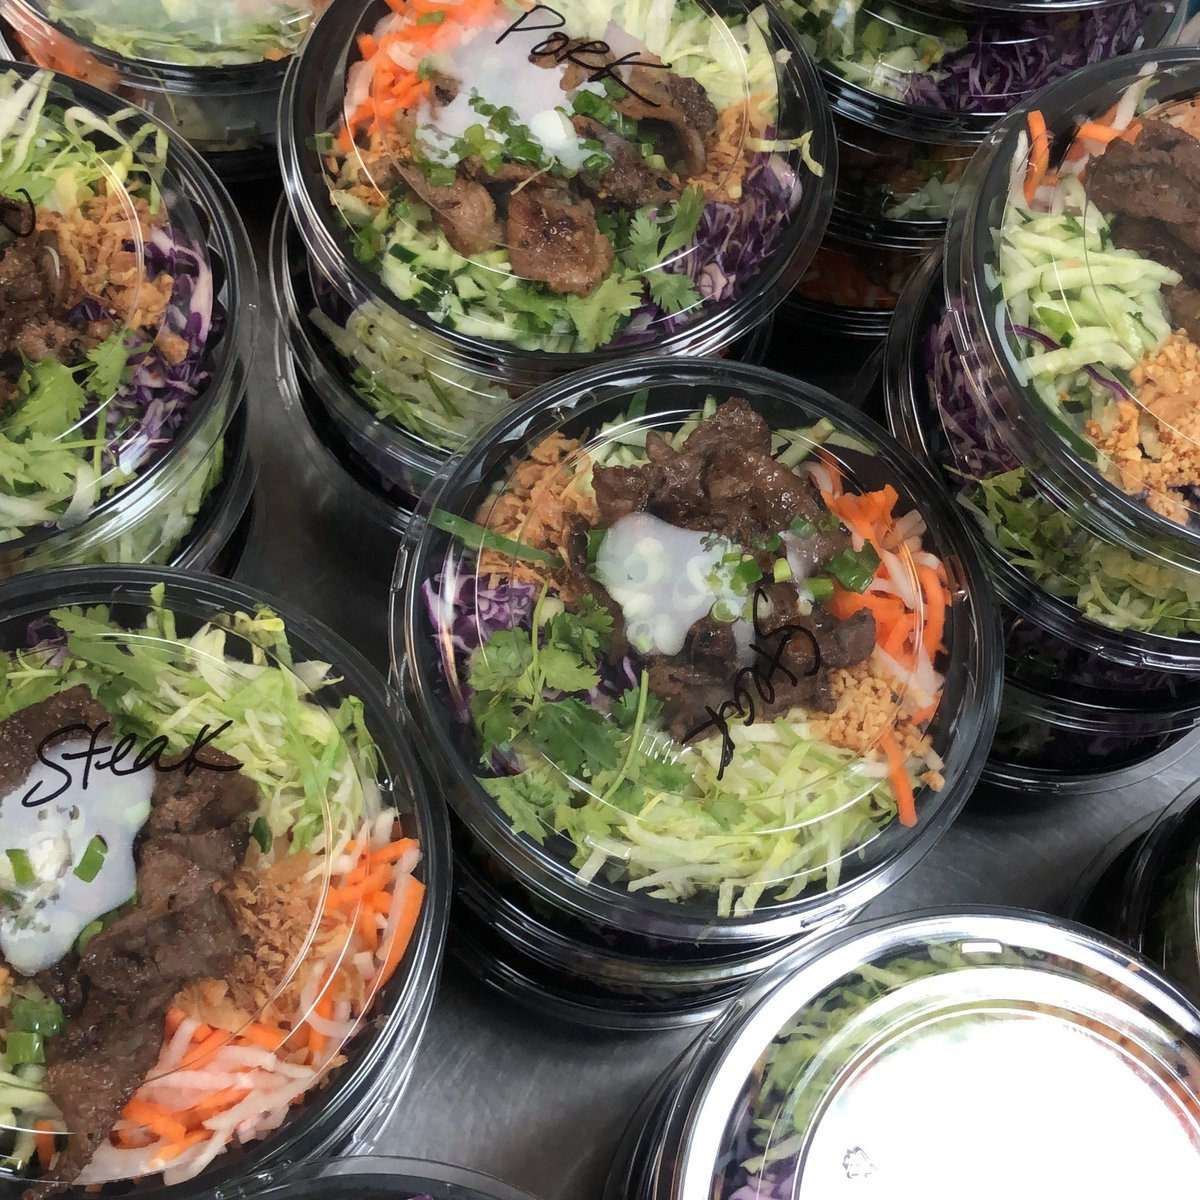 Looking for a way to treat those essential employees for their hard work? Consider our catering options! #vietnamese #catering #stleats #essentialemployeeshttp://www.ddmaustl.com/catering/